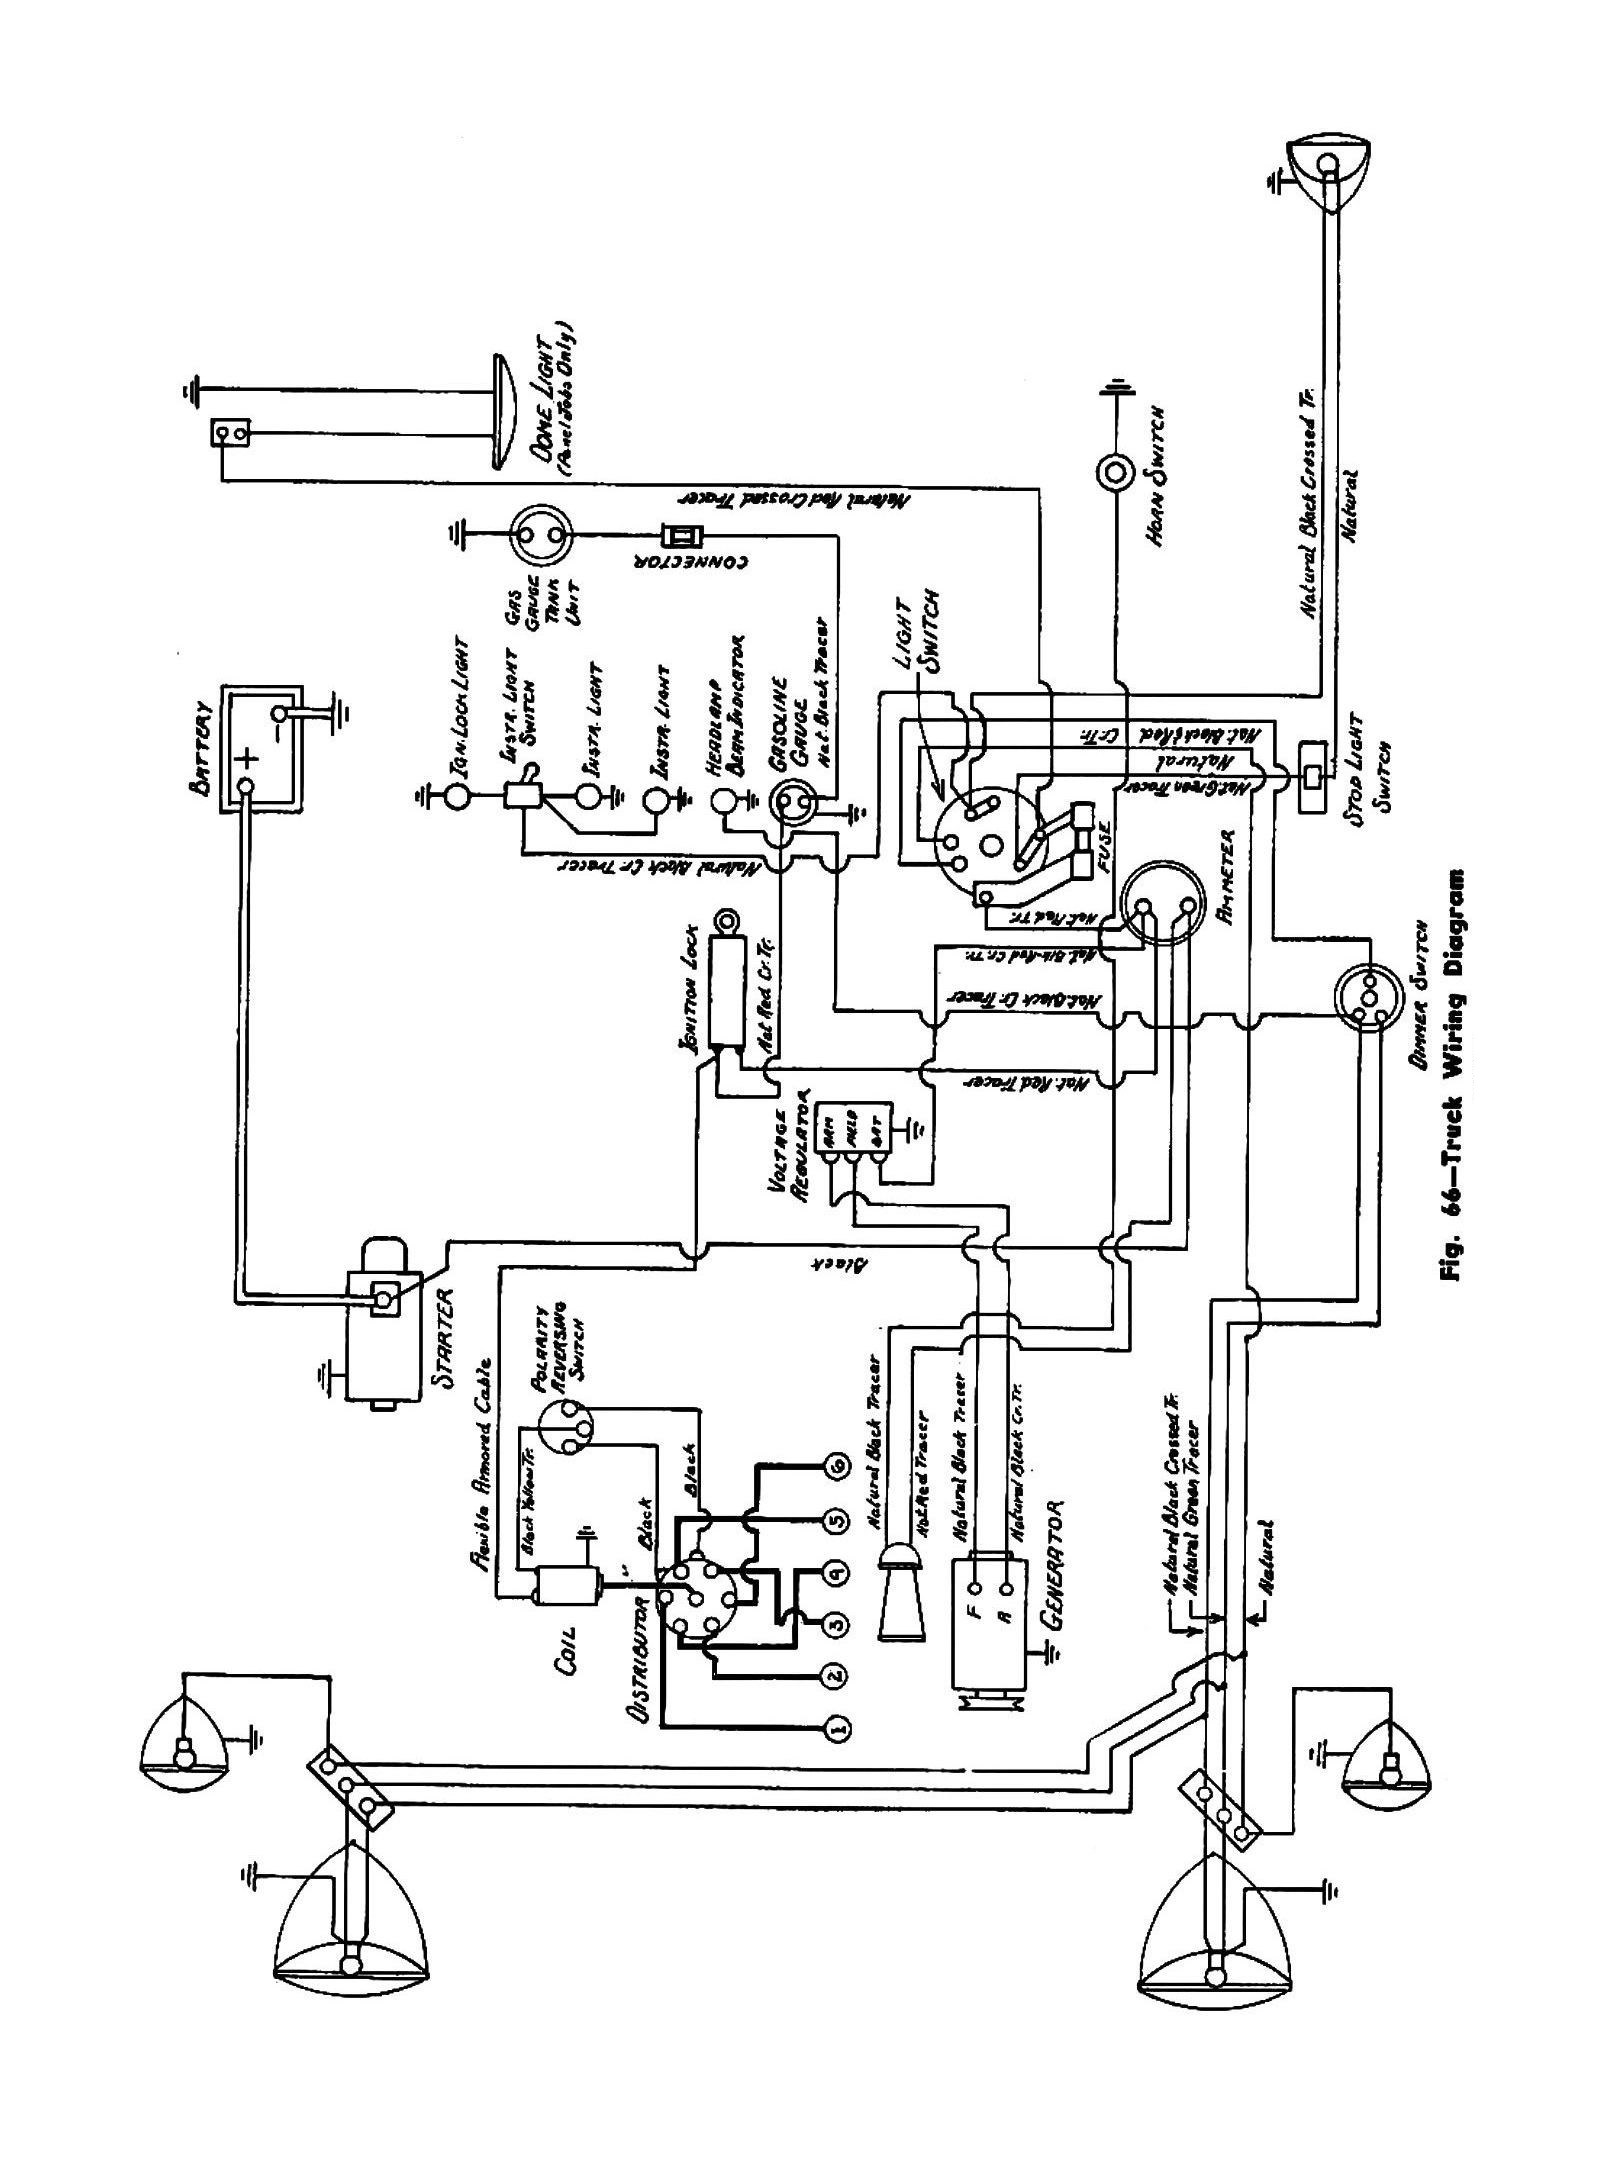 Chevy Truck Wiring Auto Electrical Diagram 1977 Chevrolet Turn Signal Free Picture For Engine